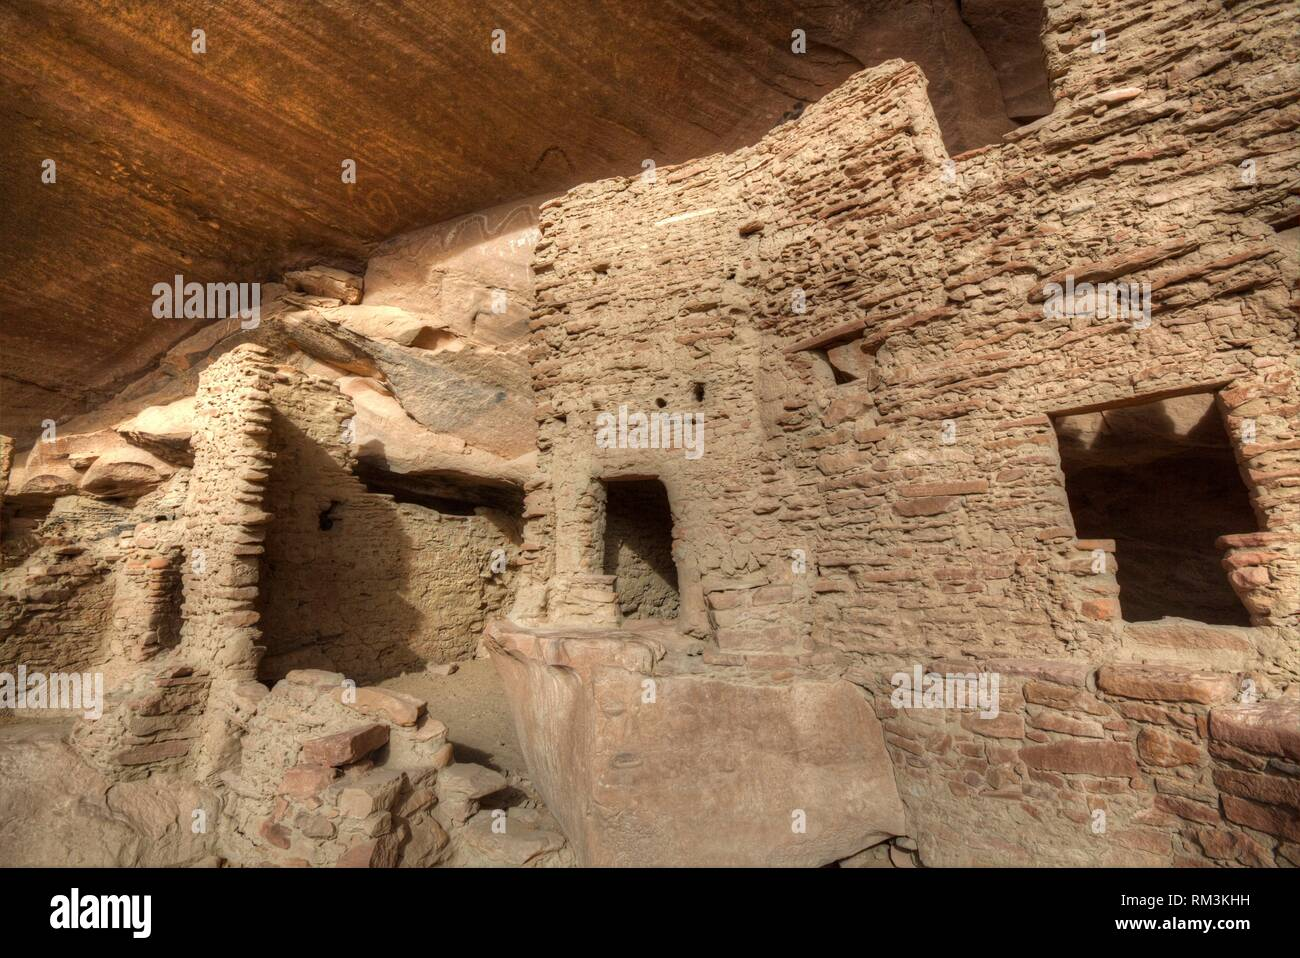 River House Ruin, Ancestral Puebloan Cliff Dwelling, 900-1300 AD, Shash Jaa National Monument, Utah, USA - Stock Image